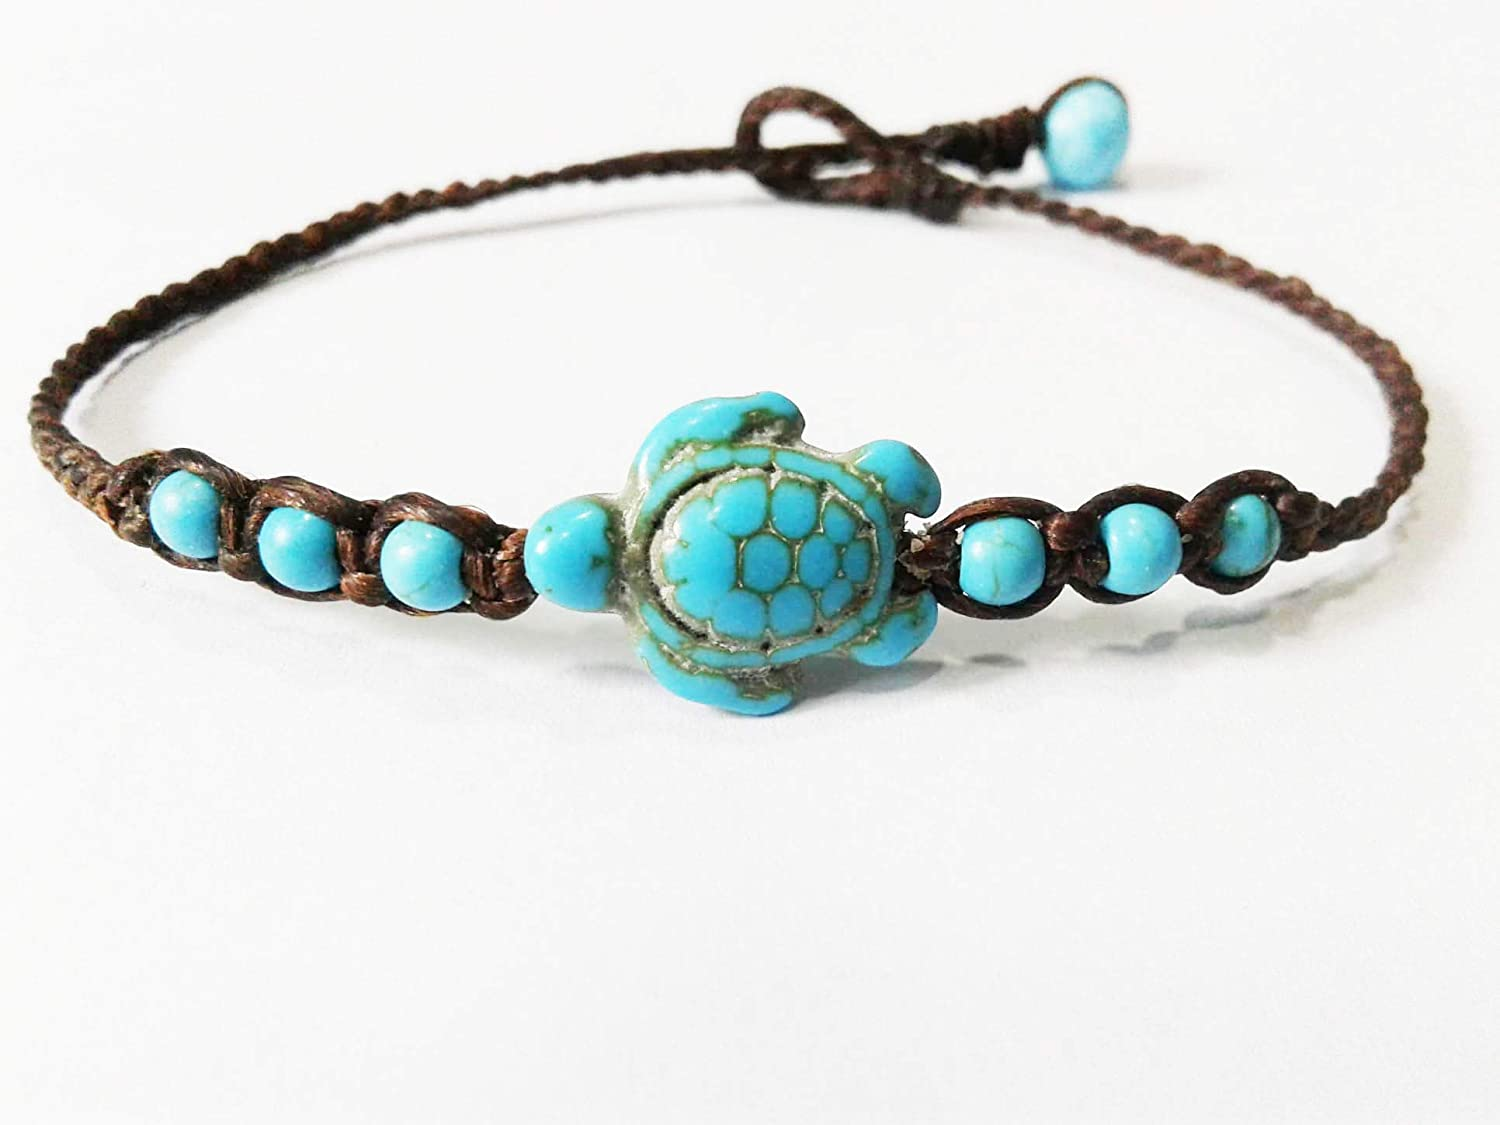 Turtle blue bracelets,Turquoise stones bracelets, It is fashionable for both men and women.